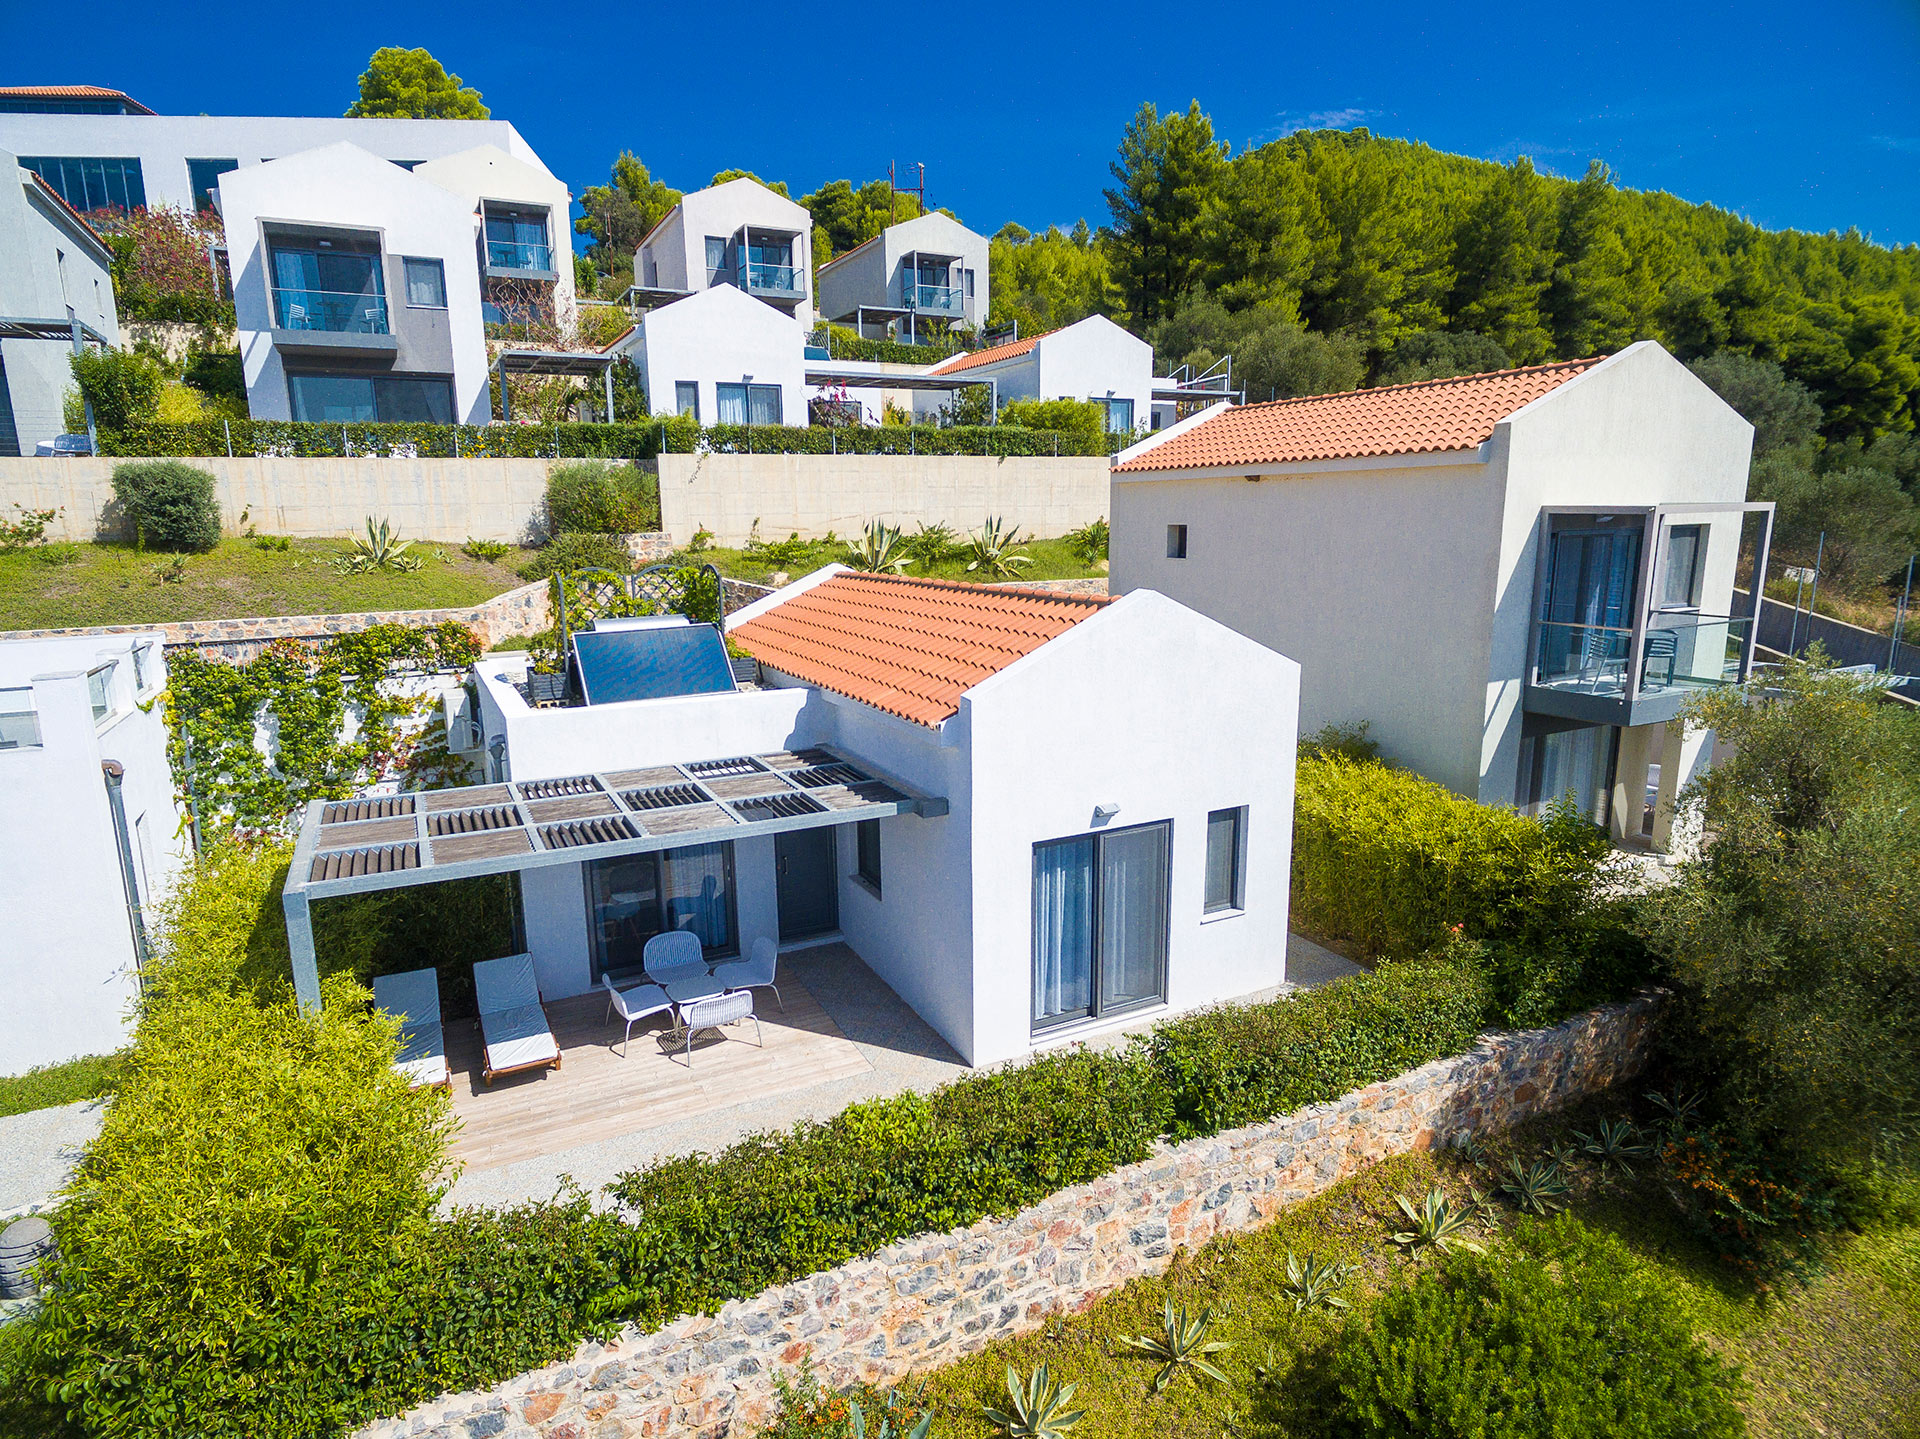 skopelos hotels adrina resort 1 beroom 1 level villa 996